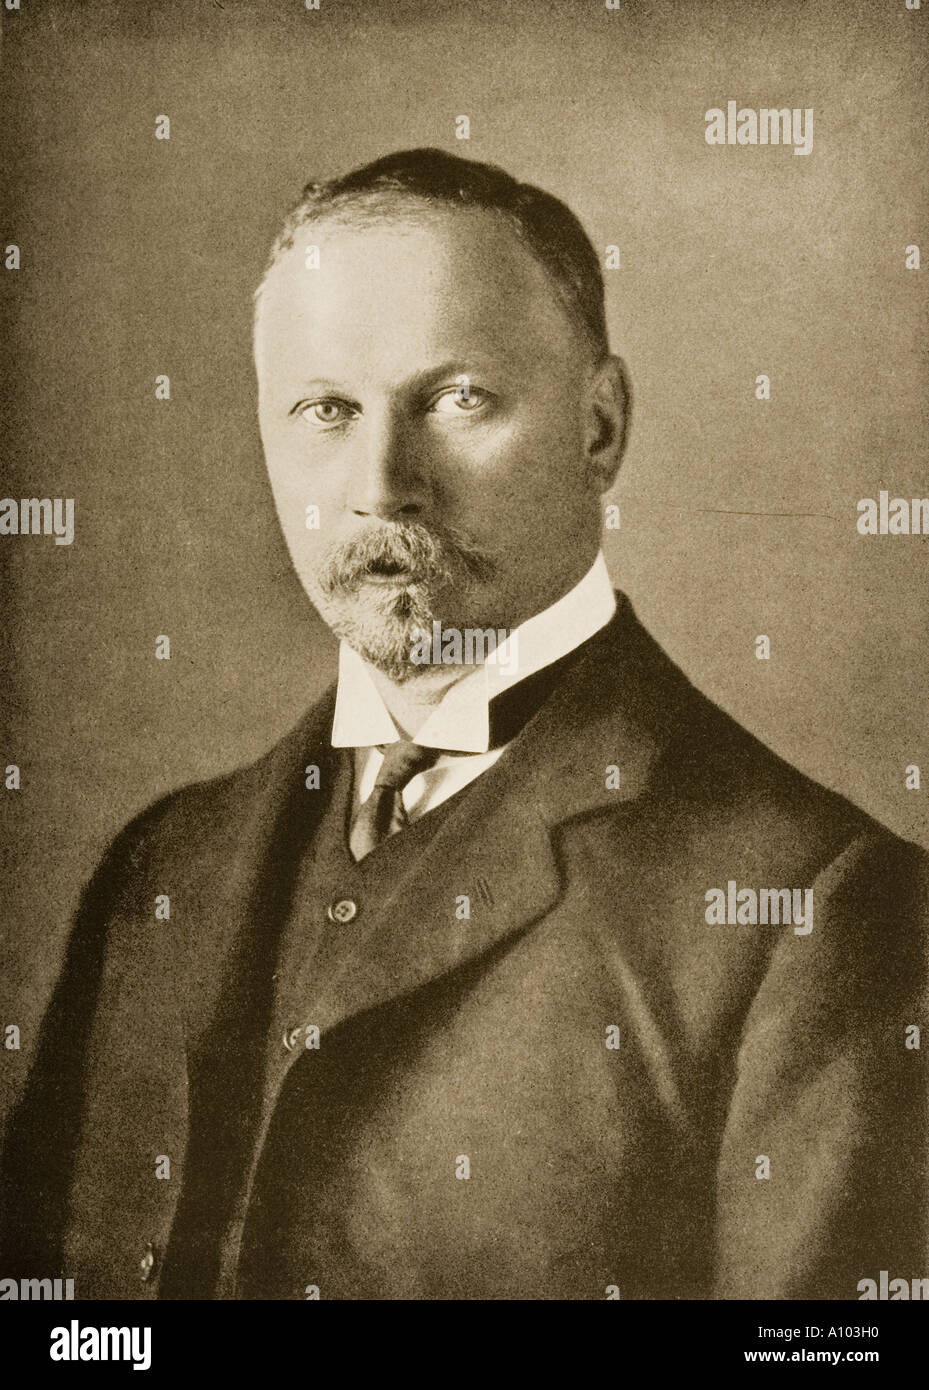 Jan Christiaan Smuts 1870 - 1850. South African statesman - Stock Image